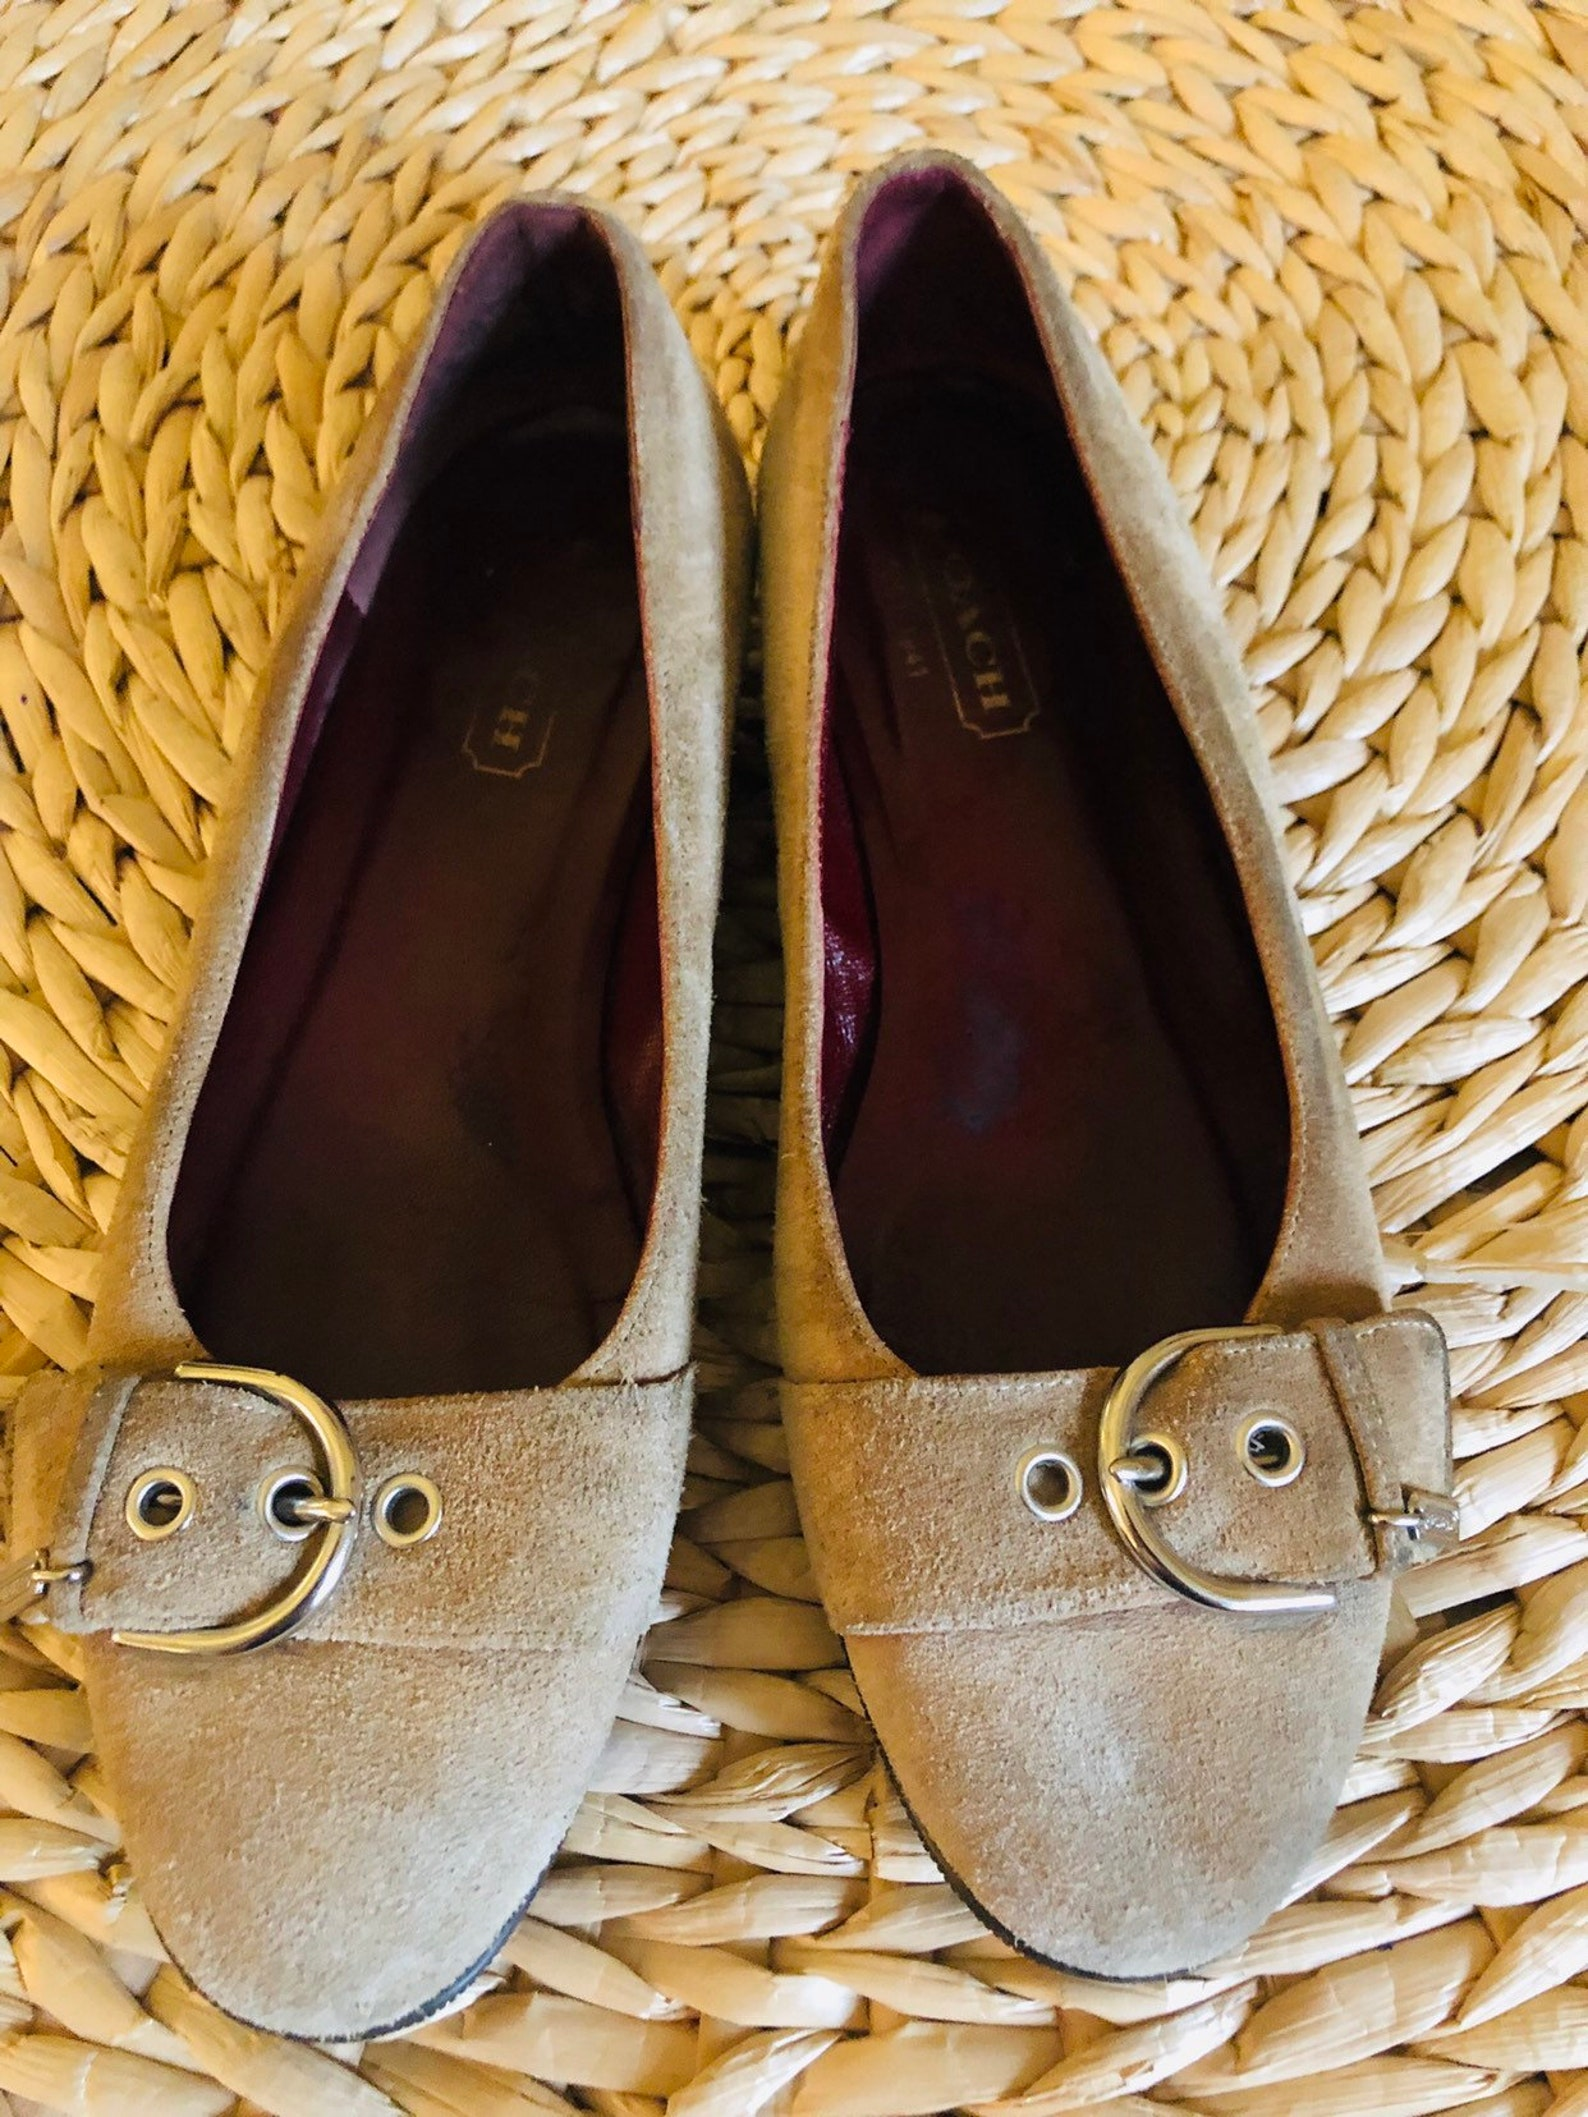 coach tan suede ballet flats made in itsly size 6.5